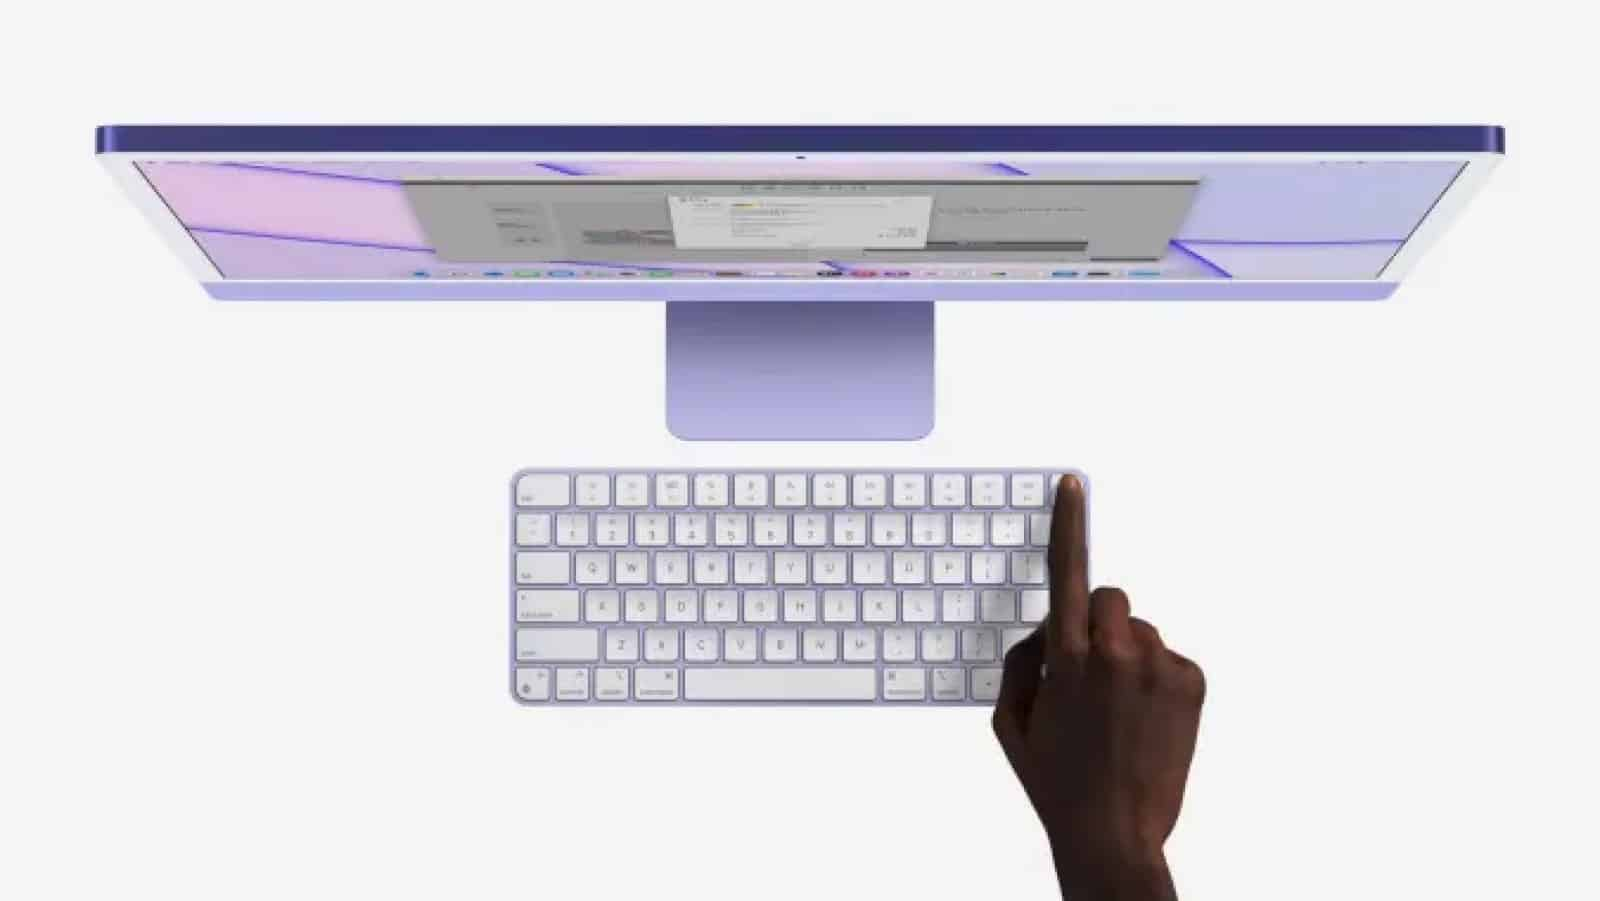 Apple's new Magic Keyboard comes with Touch ID and is available with the new iMacs - KnowTechie